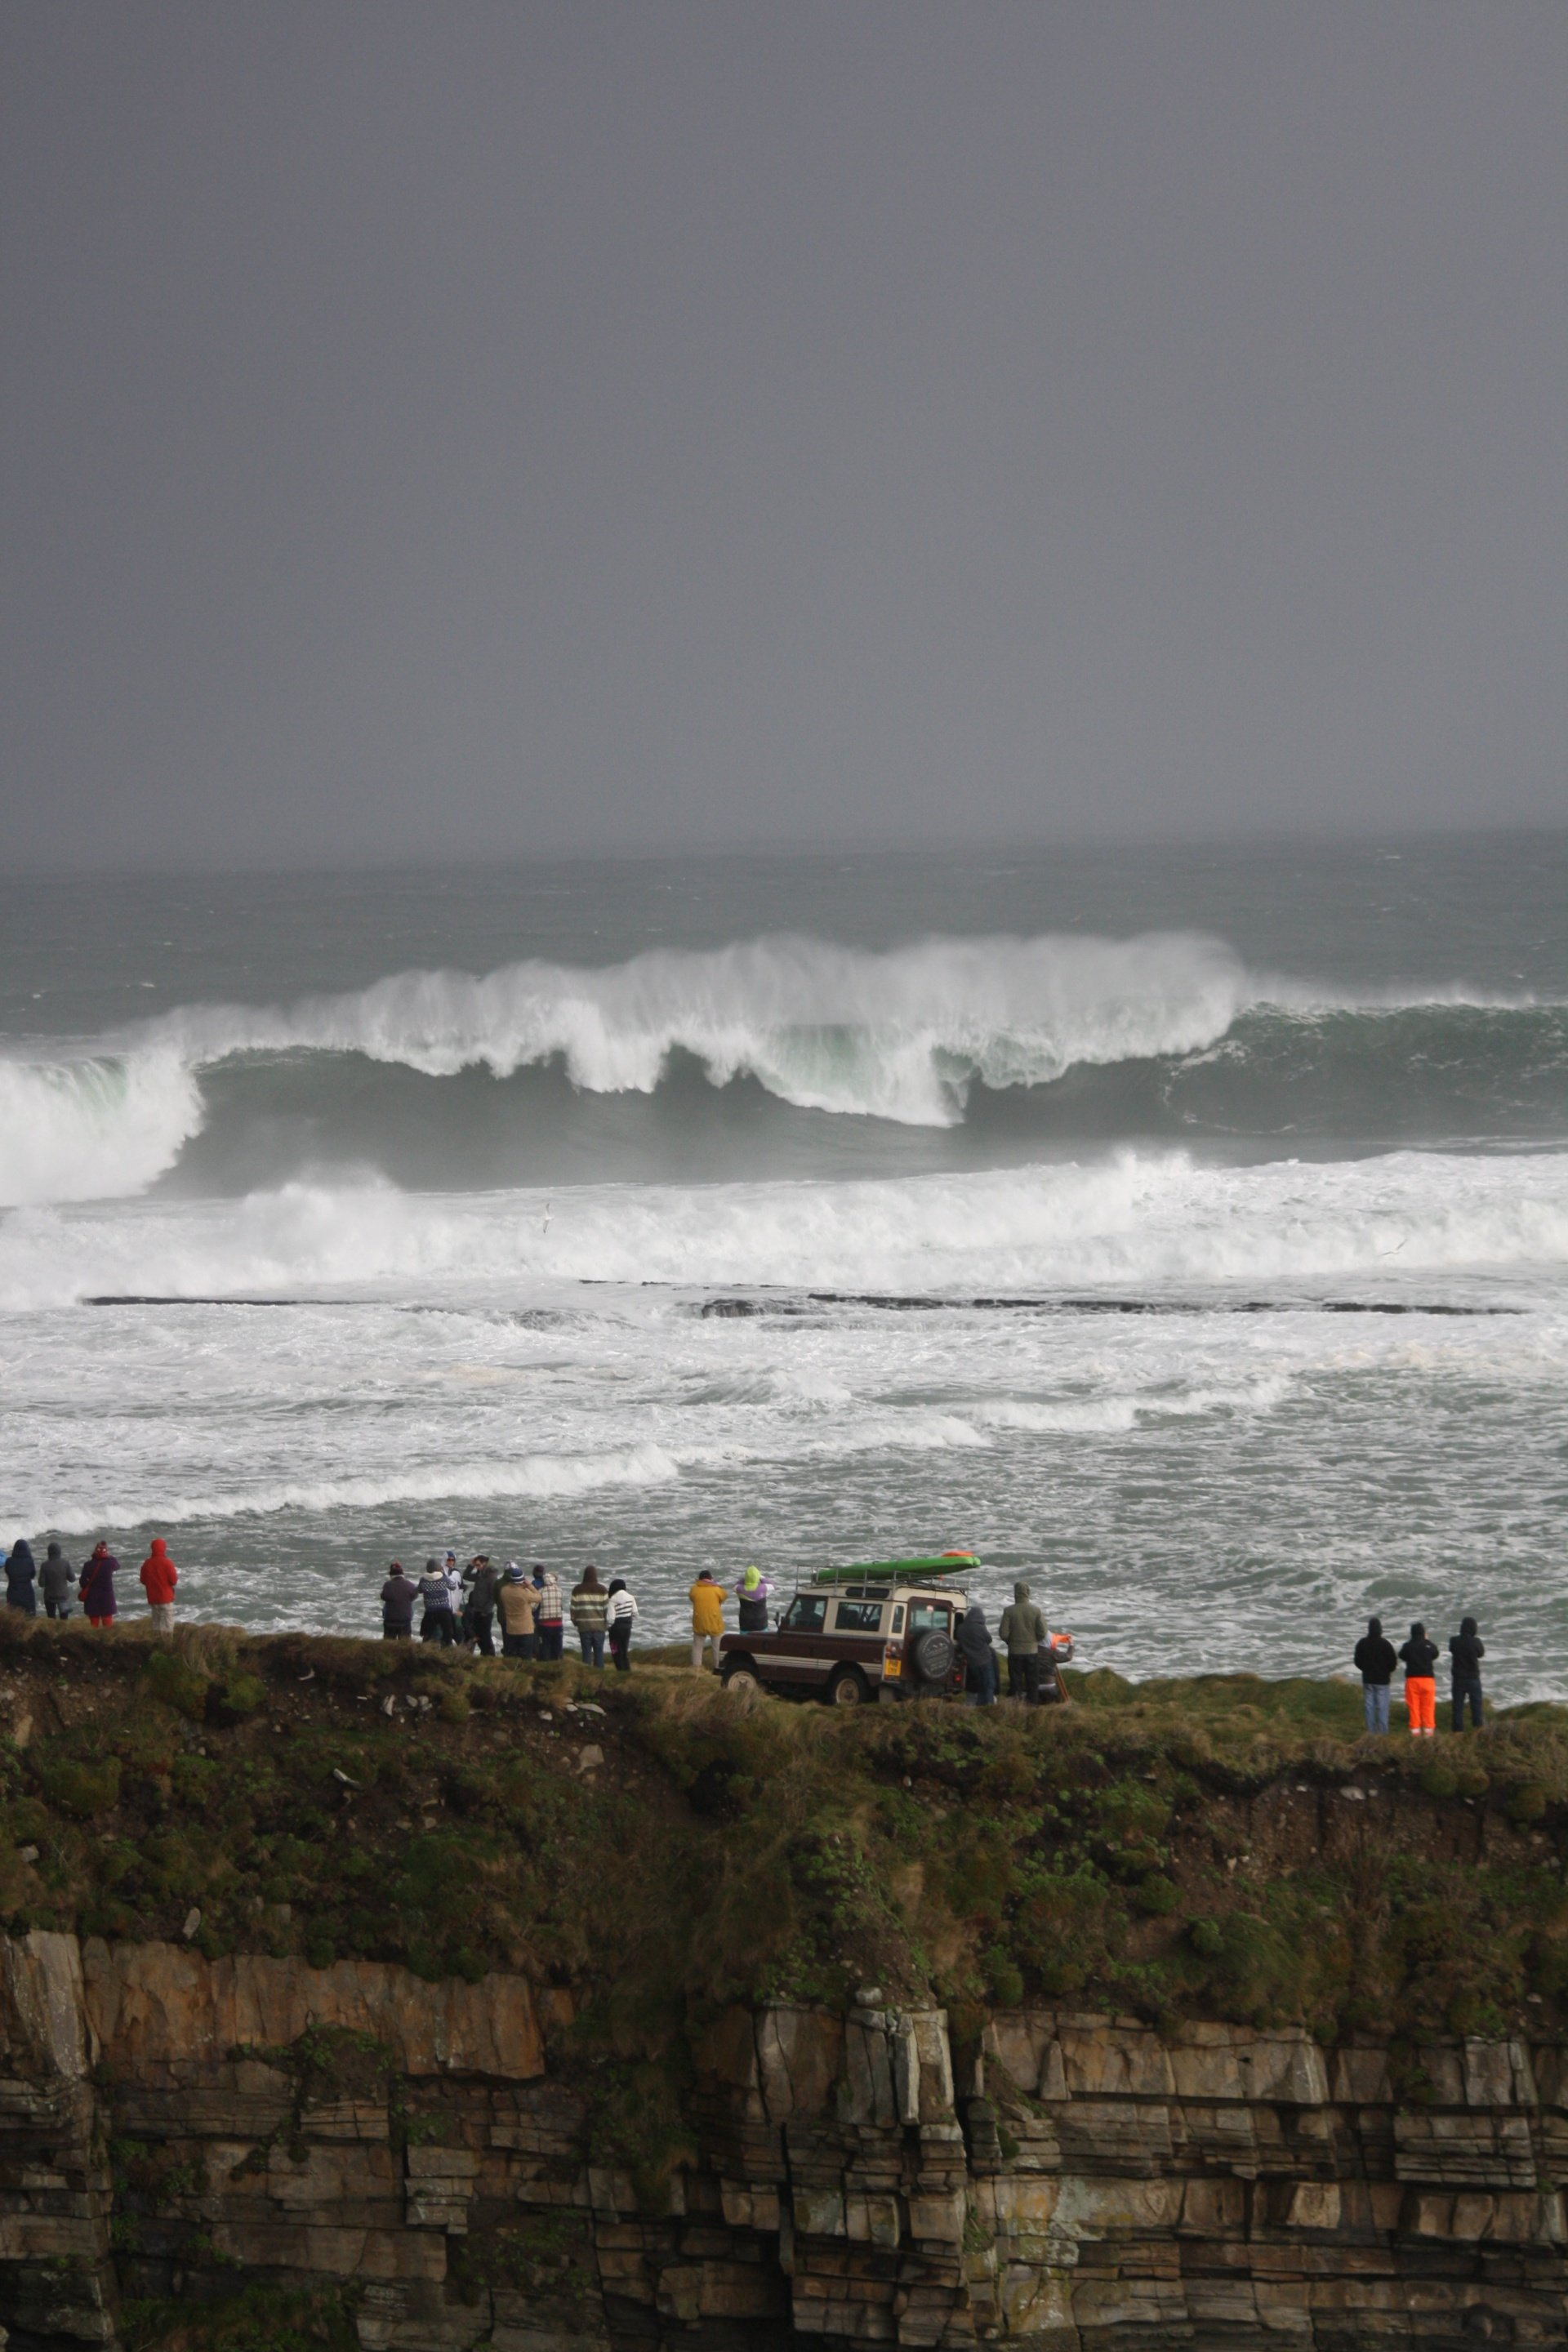 doylers's photo of Mullaghmore Head